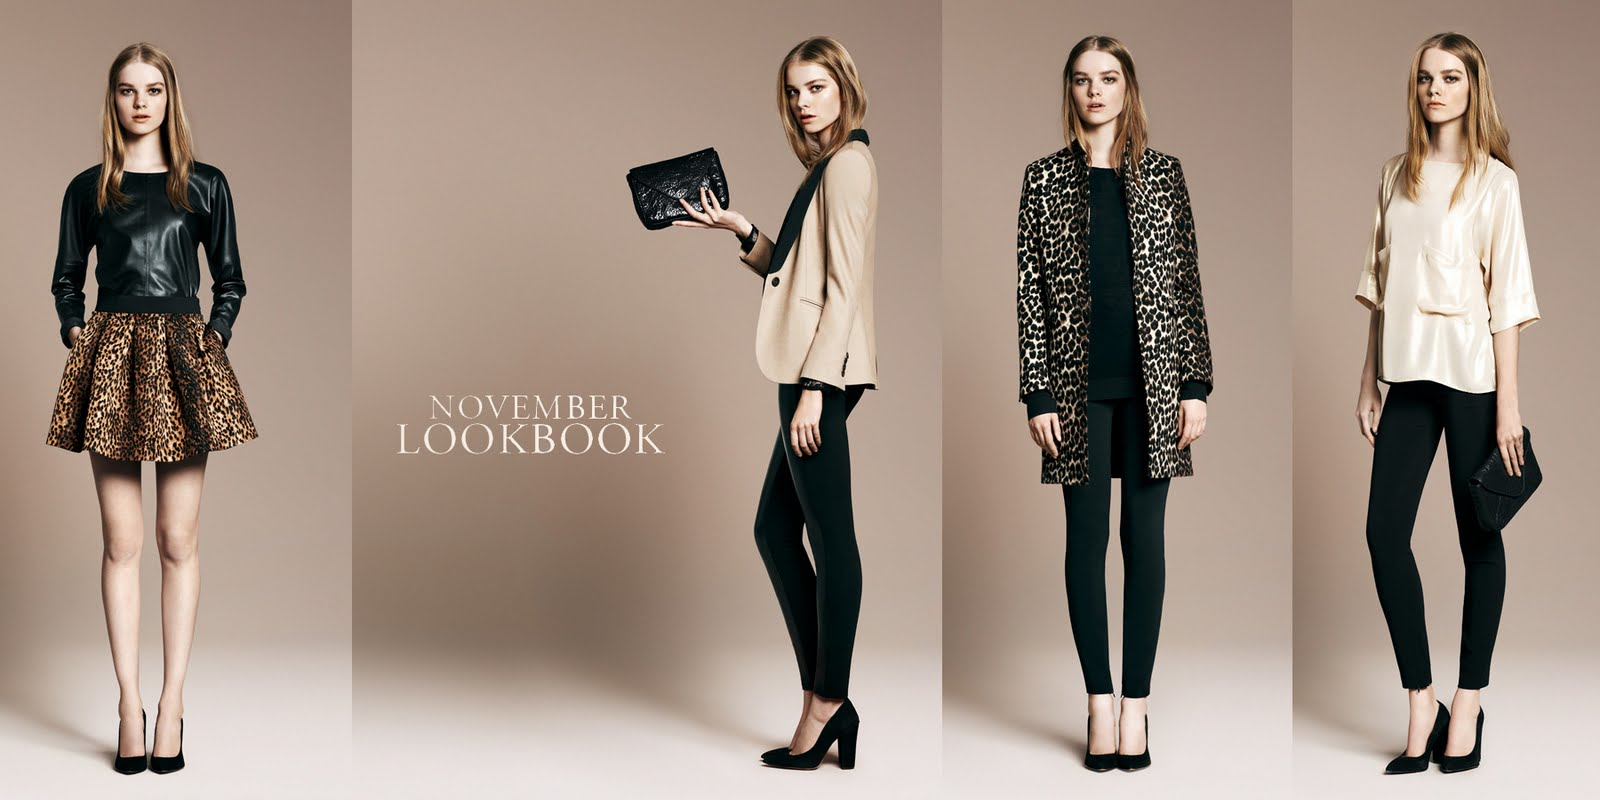 Zara Lookbook November 2010